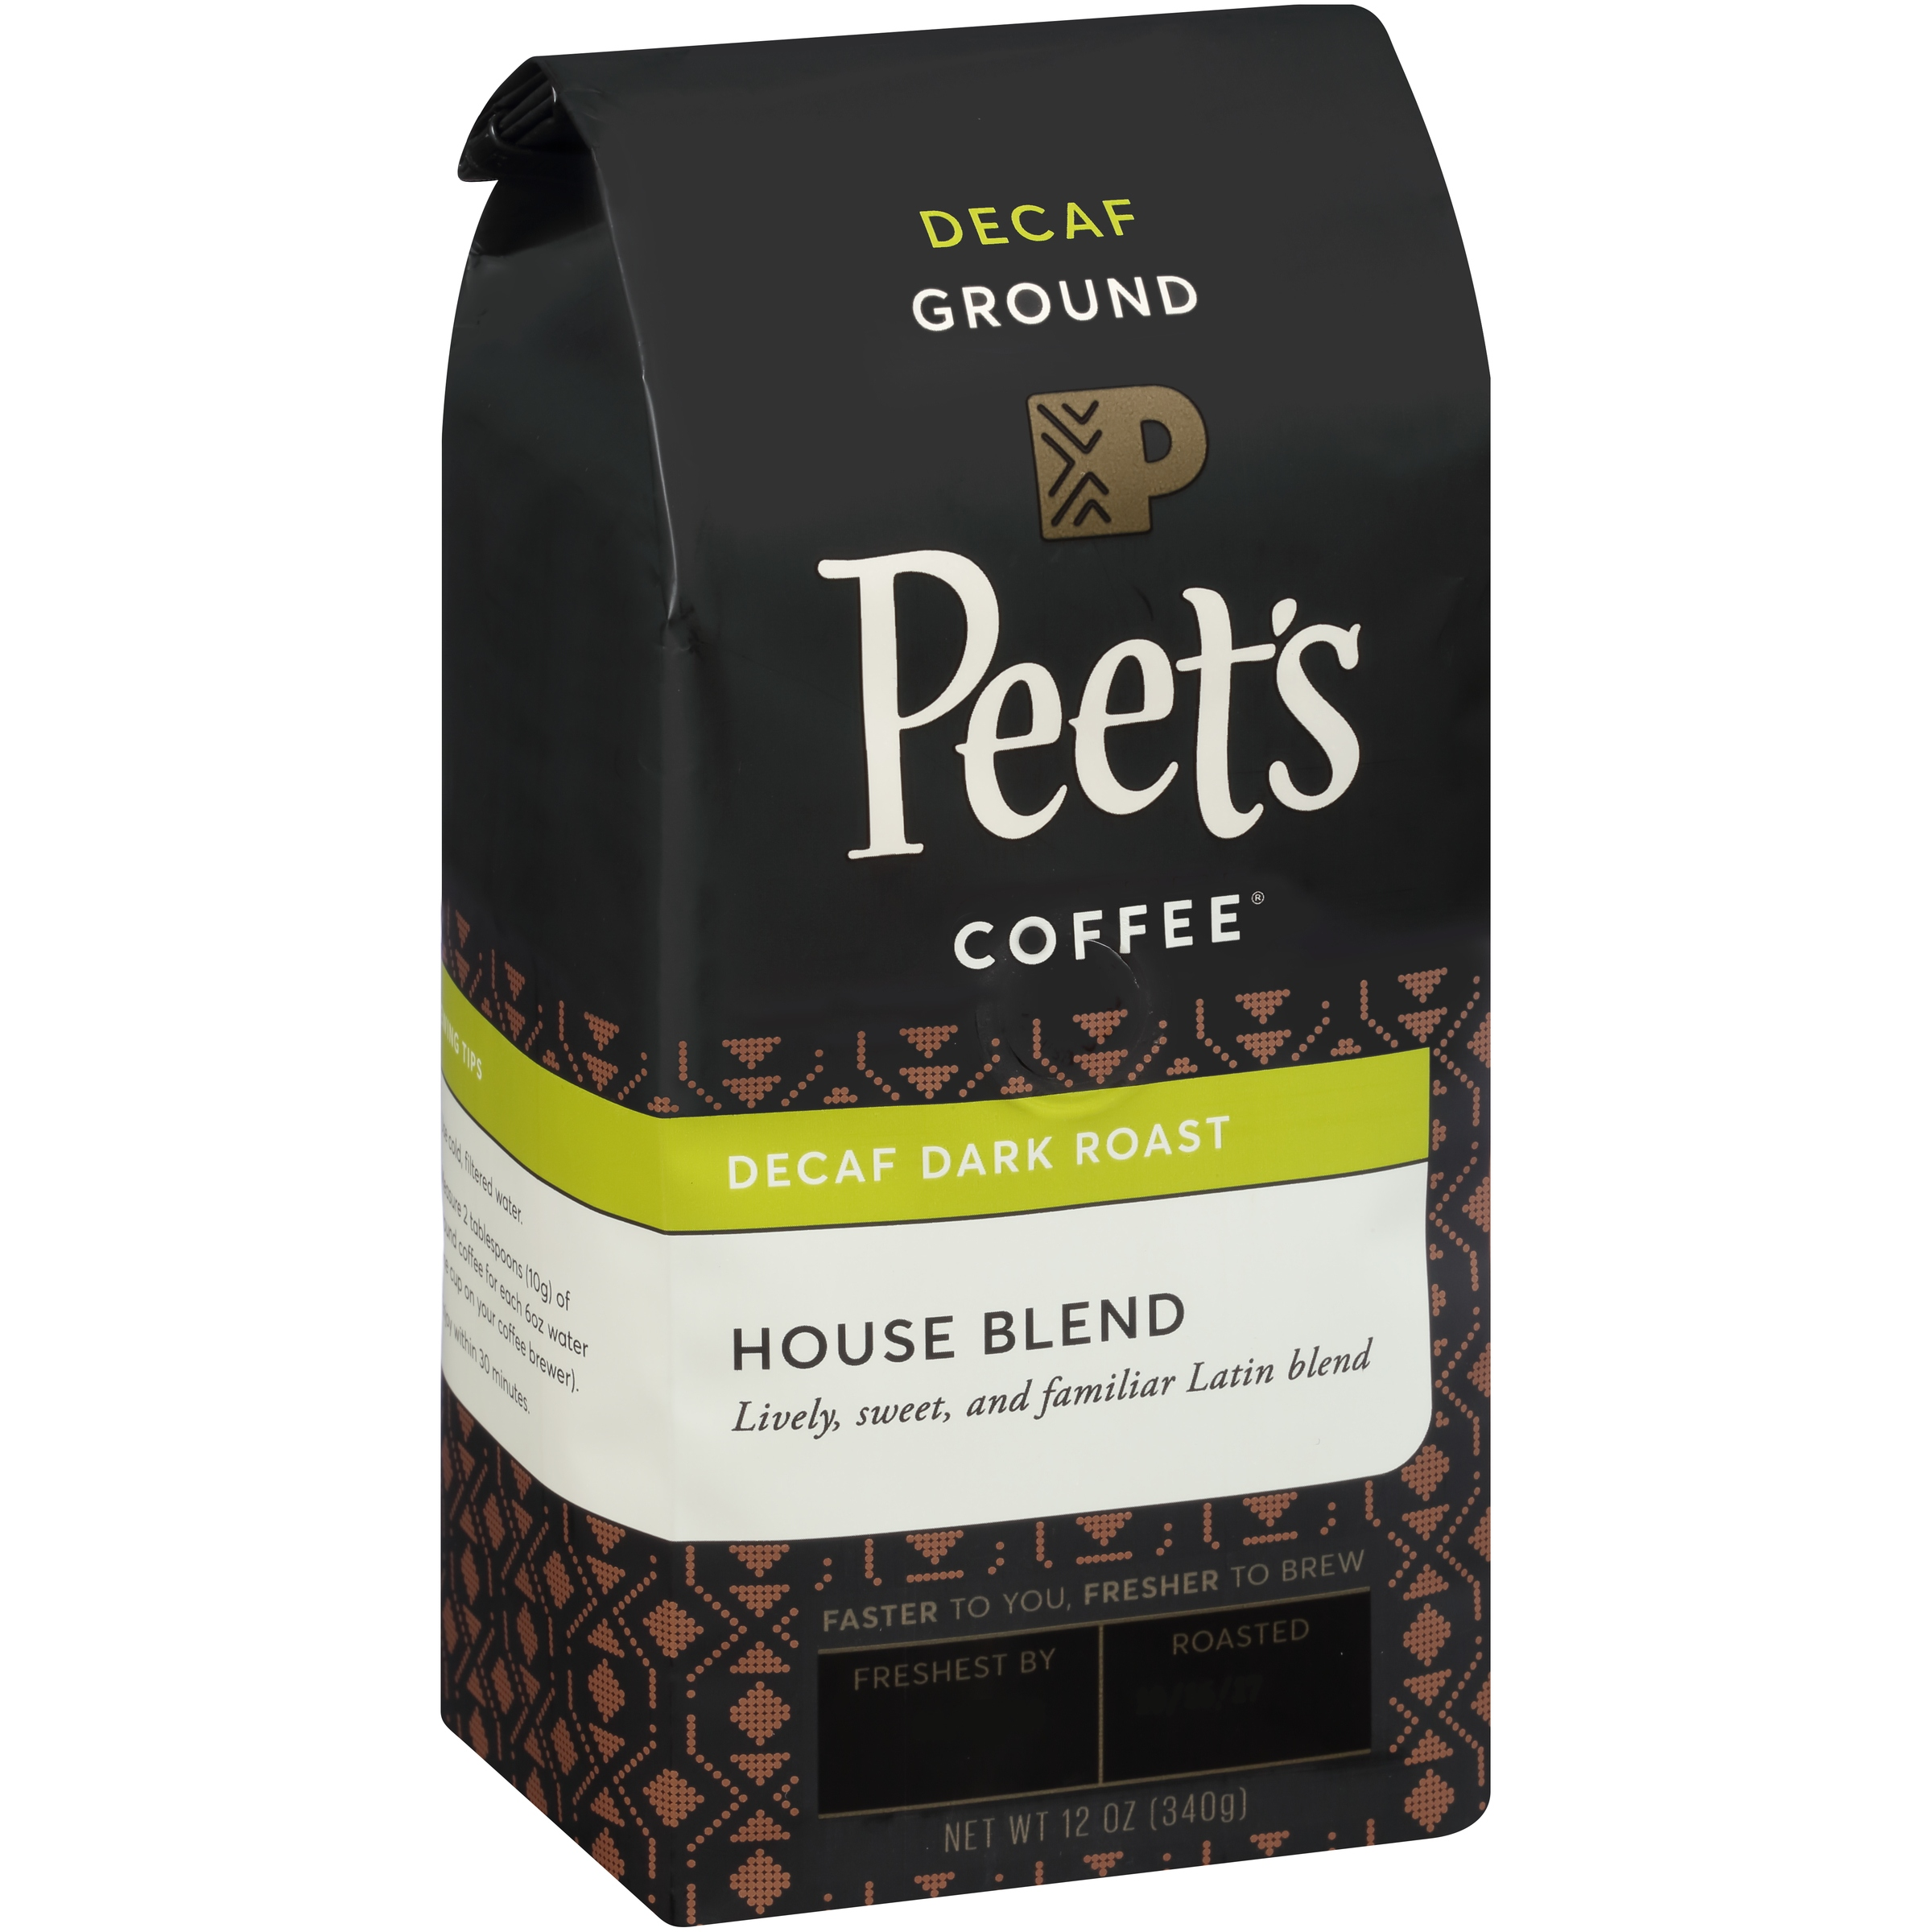 Peet's Coffee® House Blend Decaf Dark Roast Ground Coffee 12 oz. Stand-Up Bag